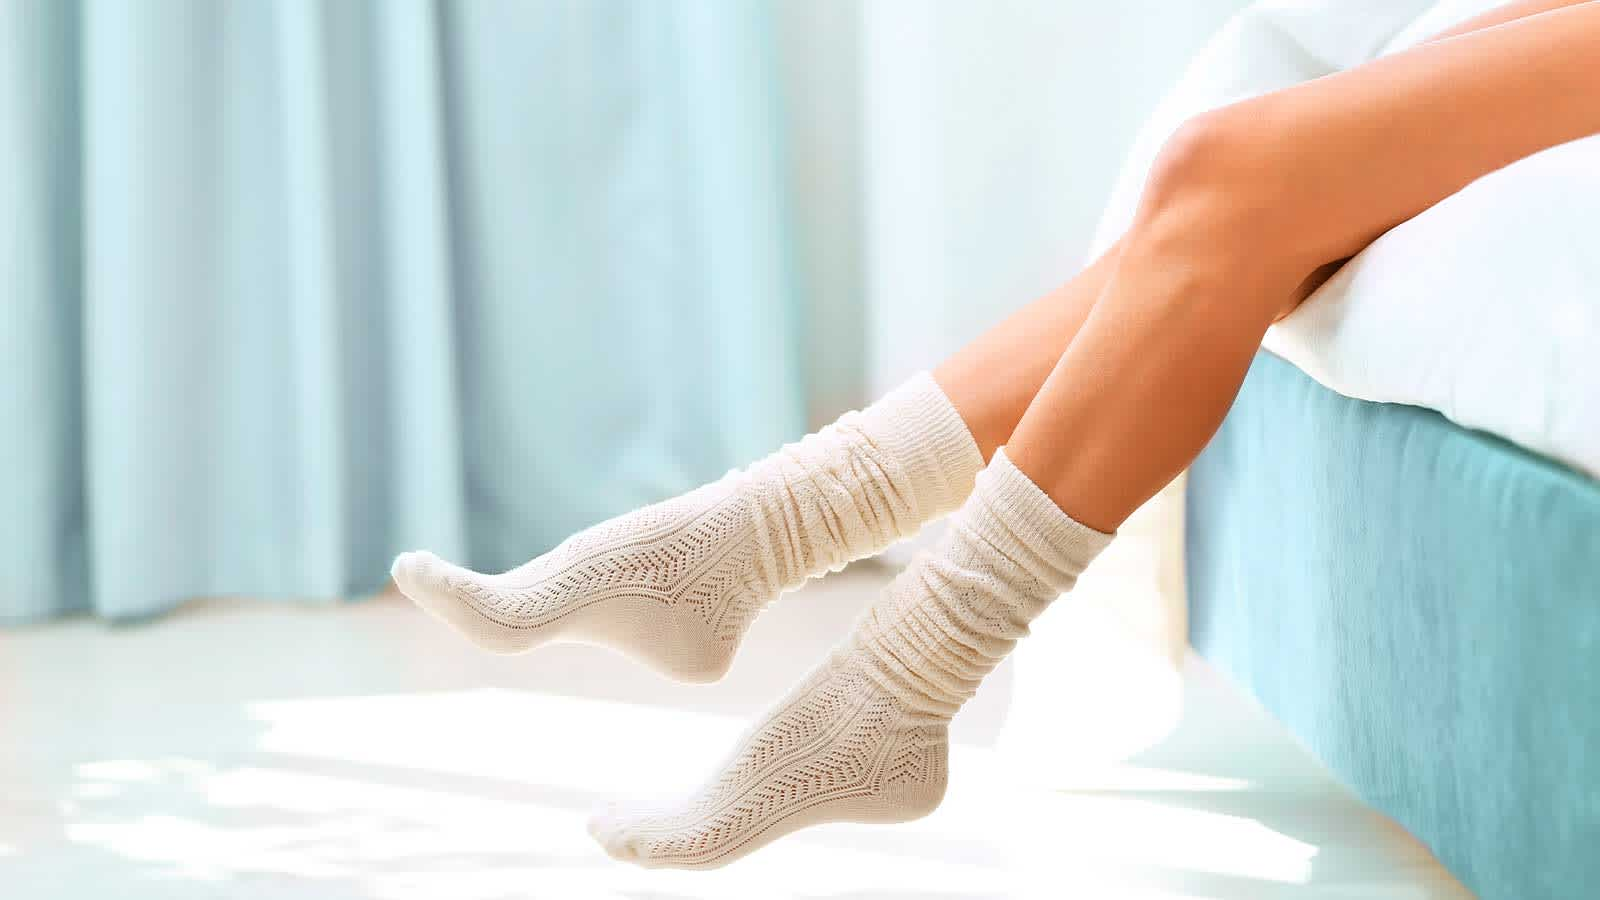 Women's Legs with Socks